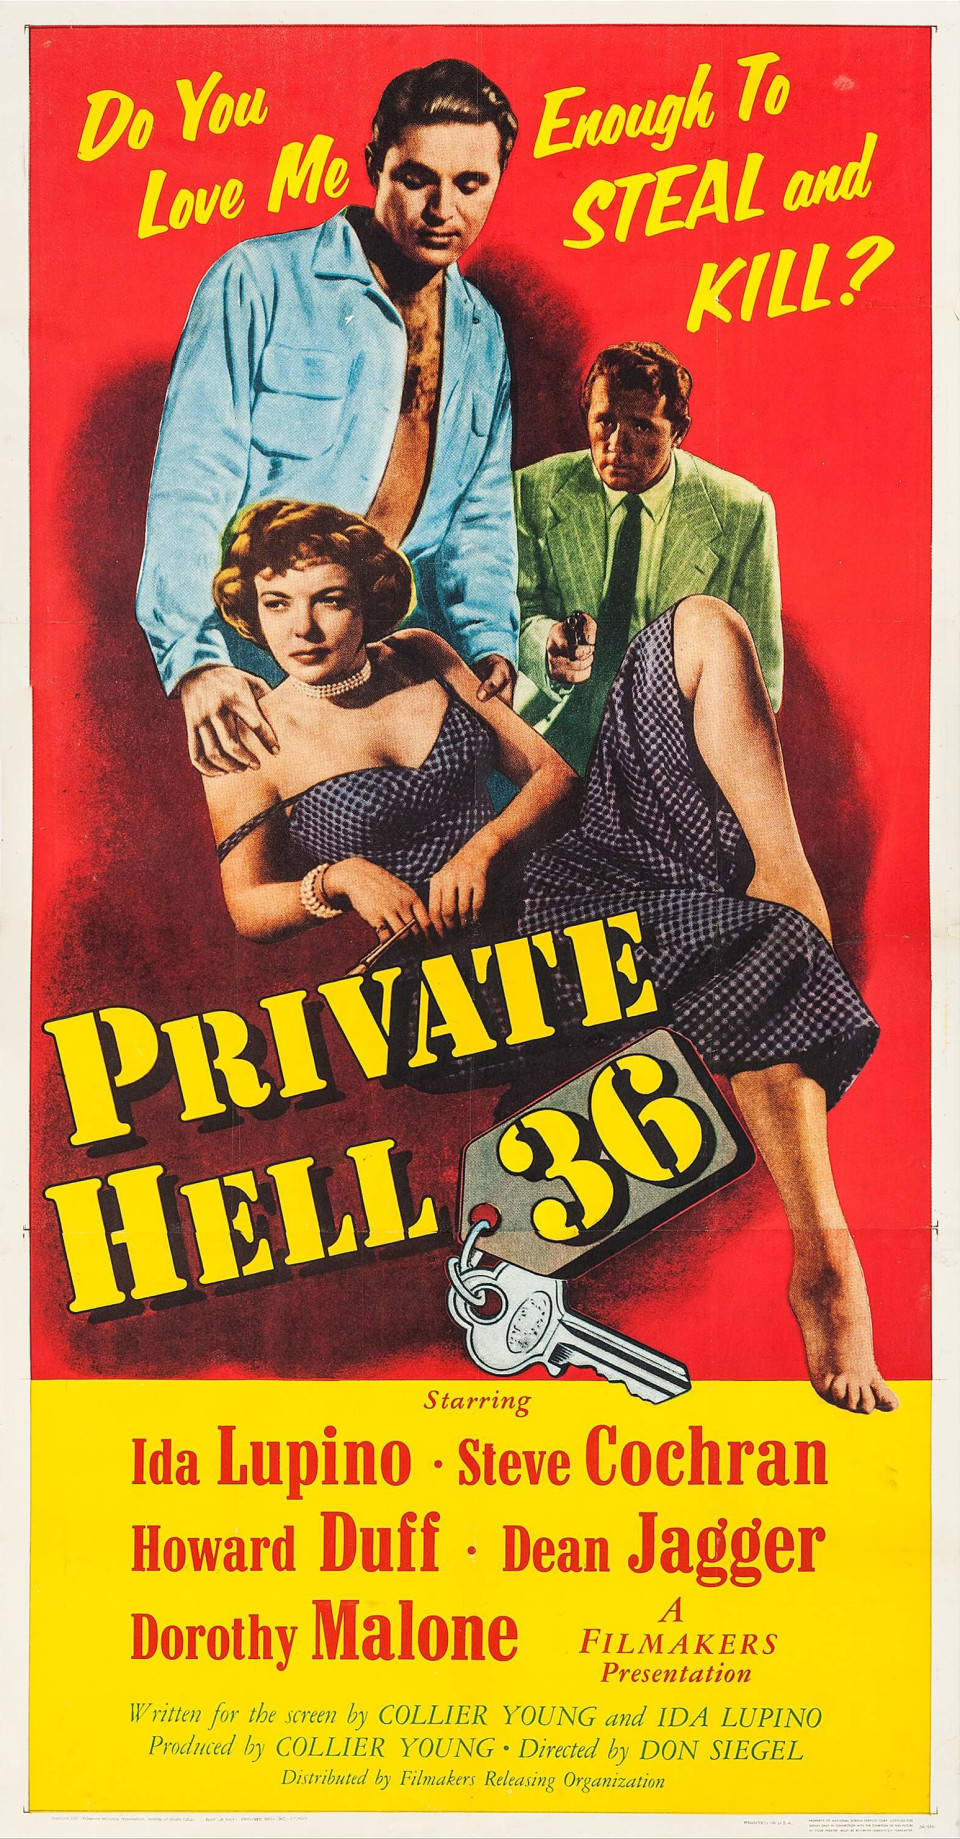 034-Private Hell 36-3sheet